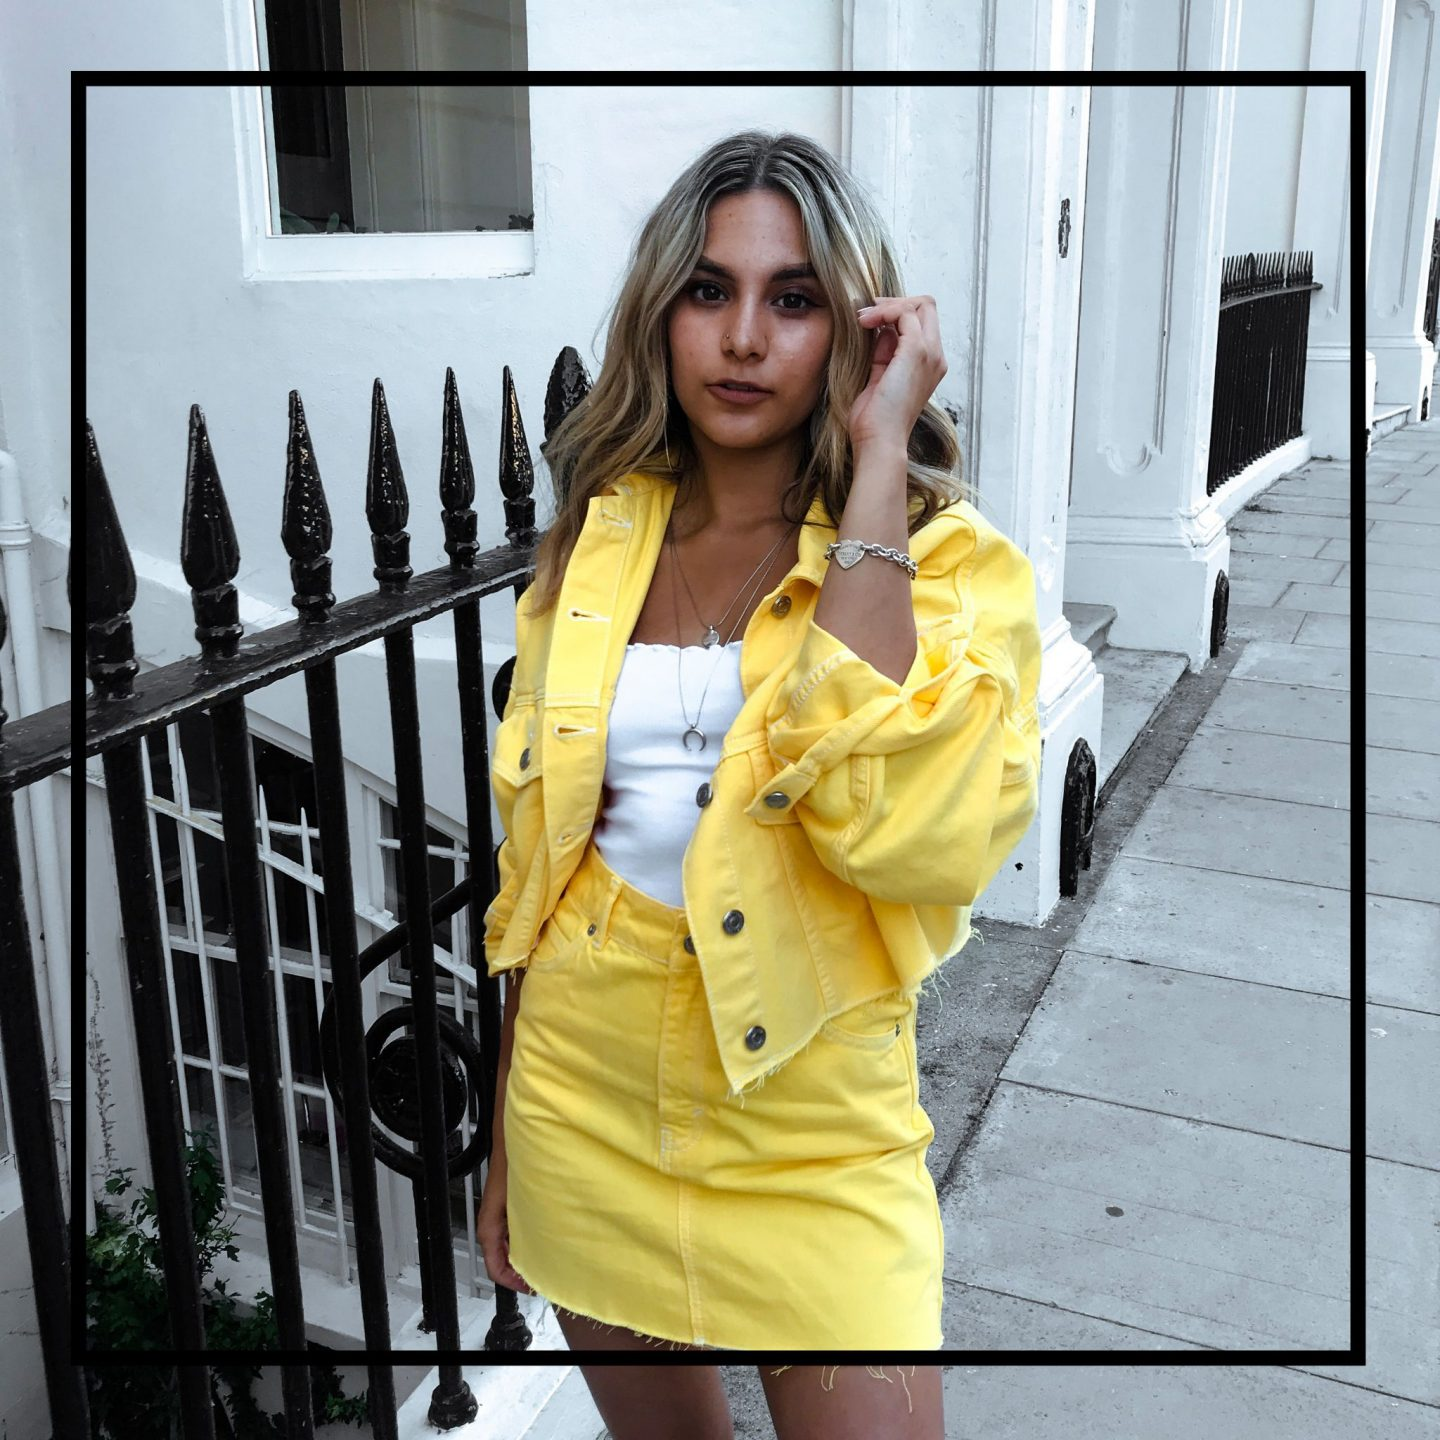 yasmin stefanie topshop yellow denim co ord ciara chunky trainers summer ss18 trends